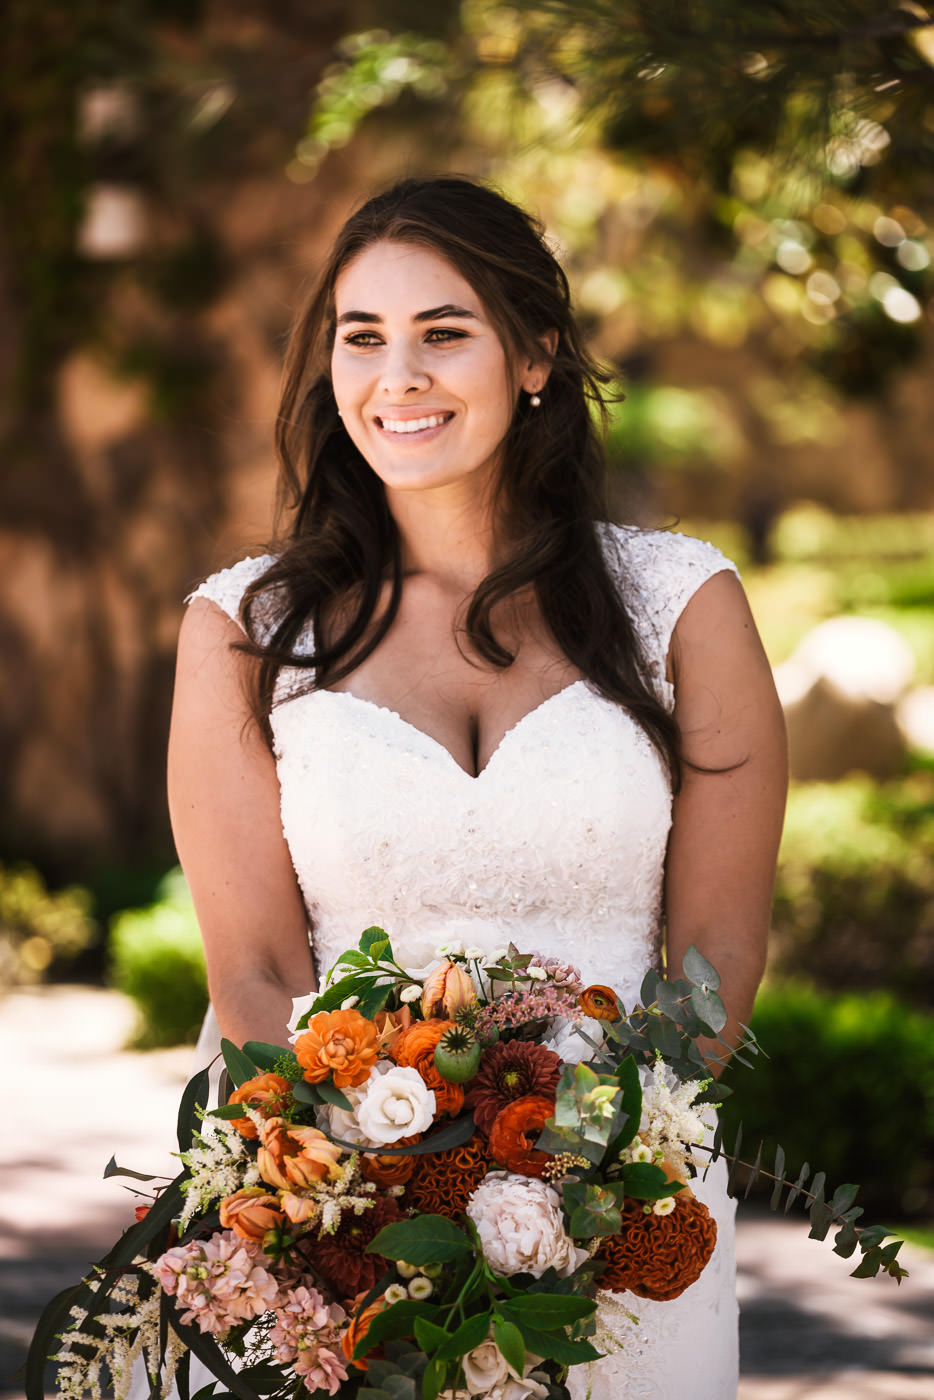 Soon to be married bride smiles as she holds her beautiful fall colored bouquet.